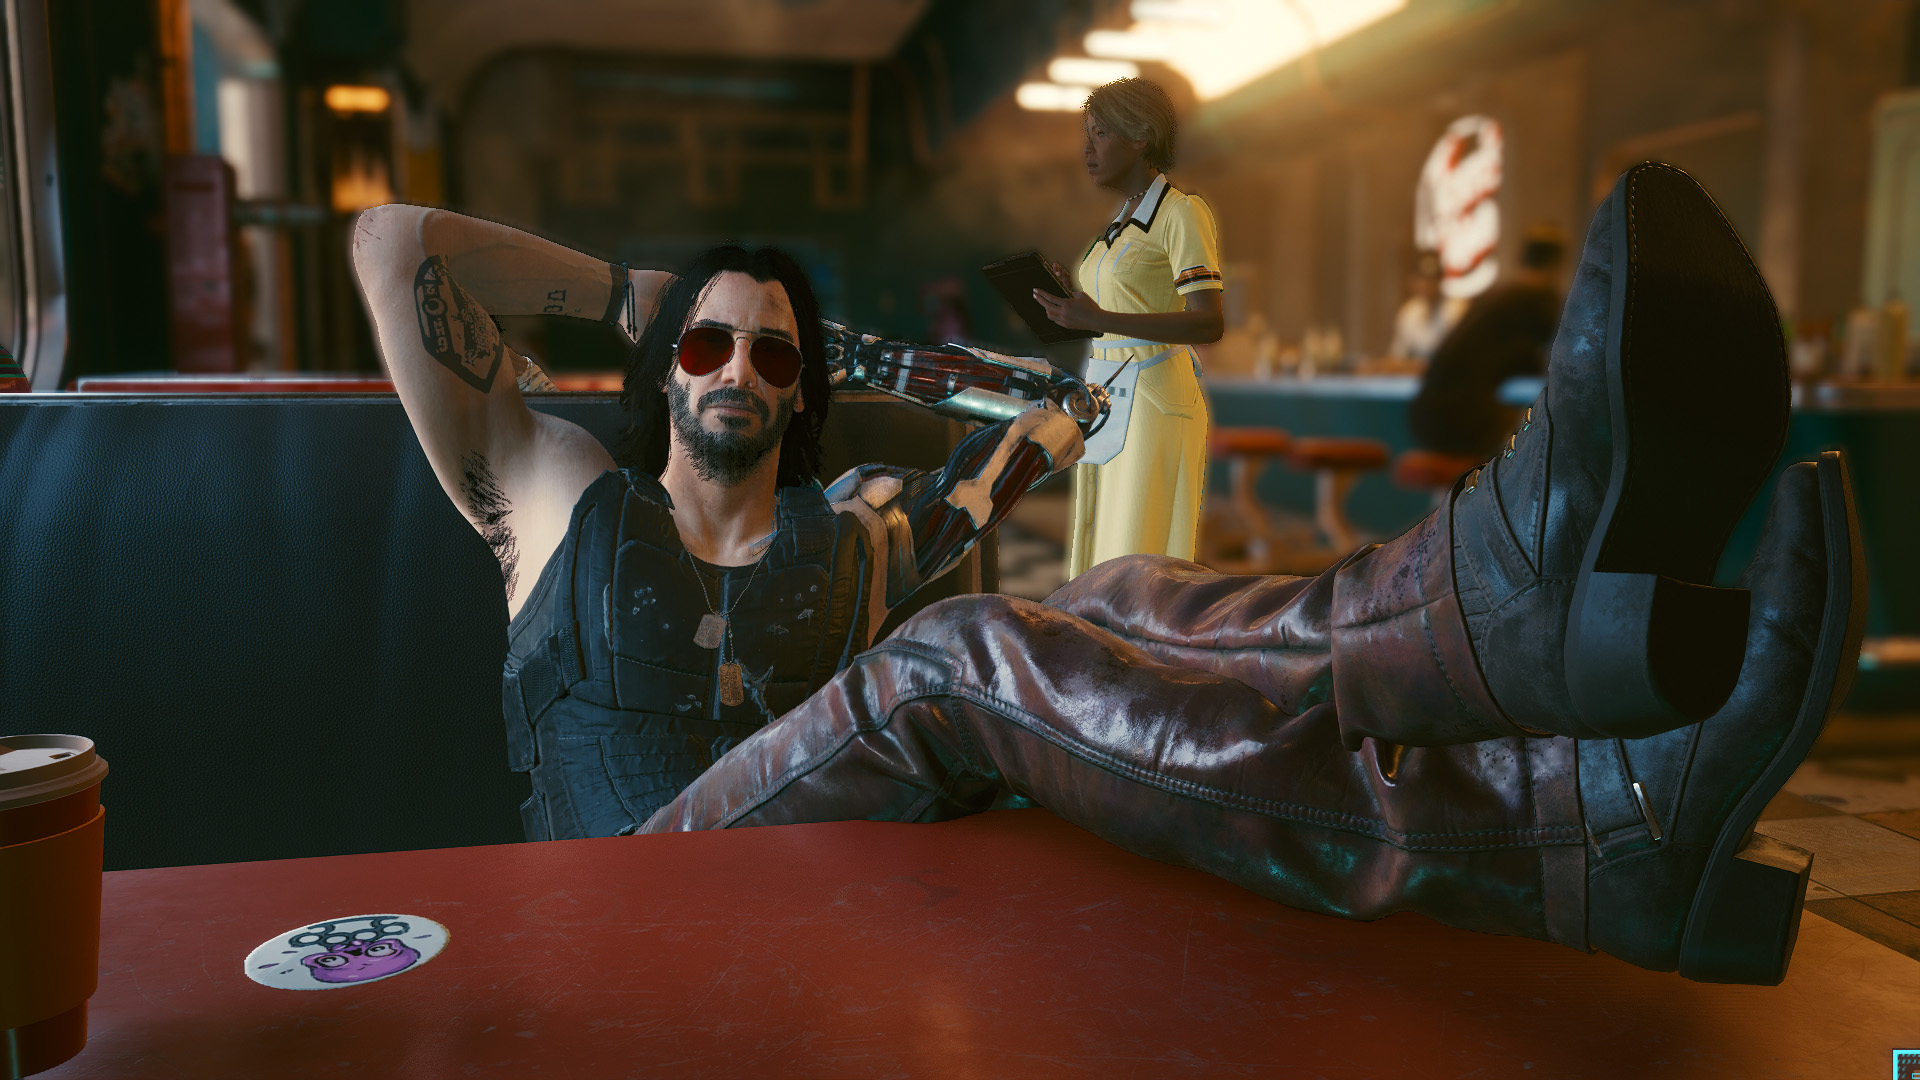 Where to find the Johnny Silverhand items in Cyberpunk 2077